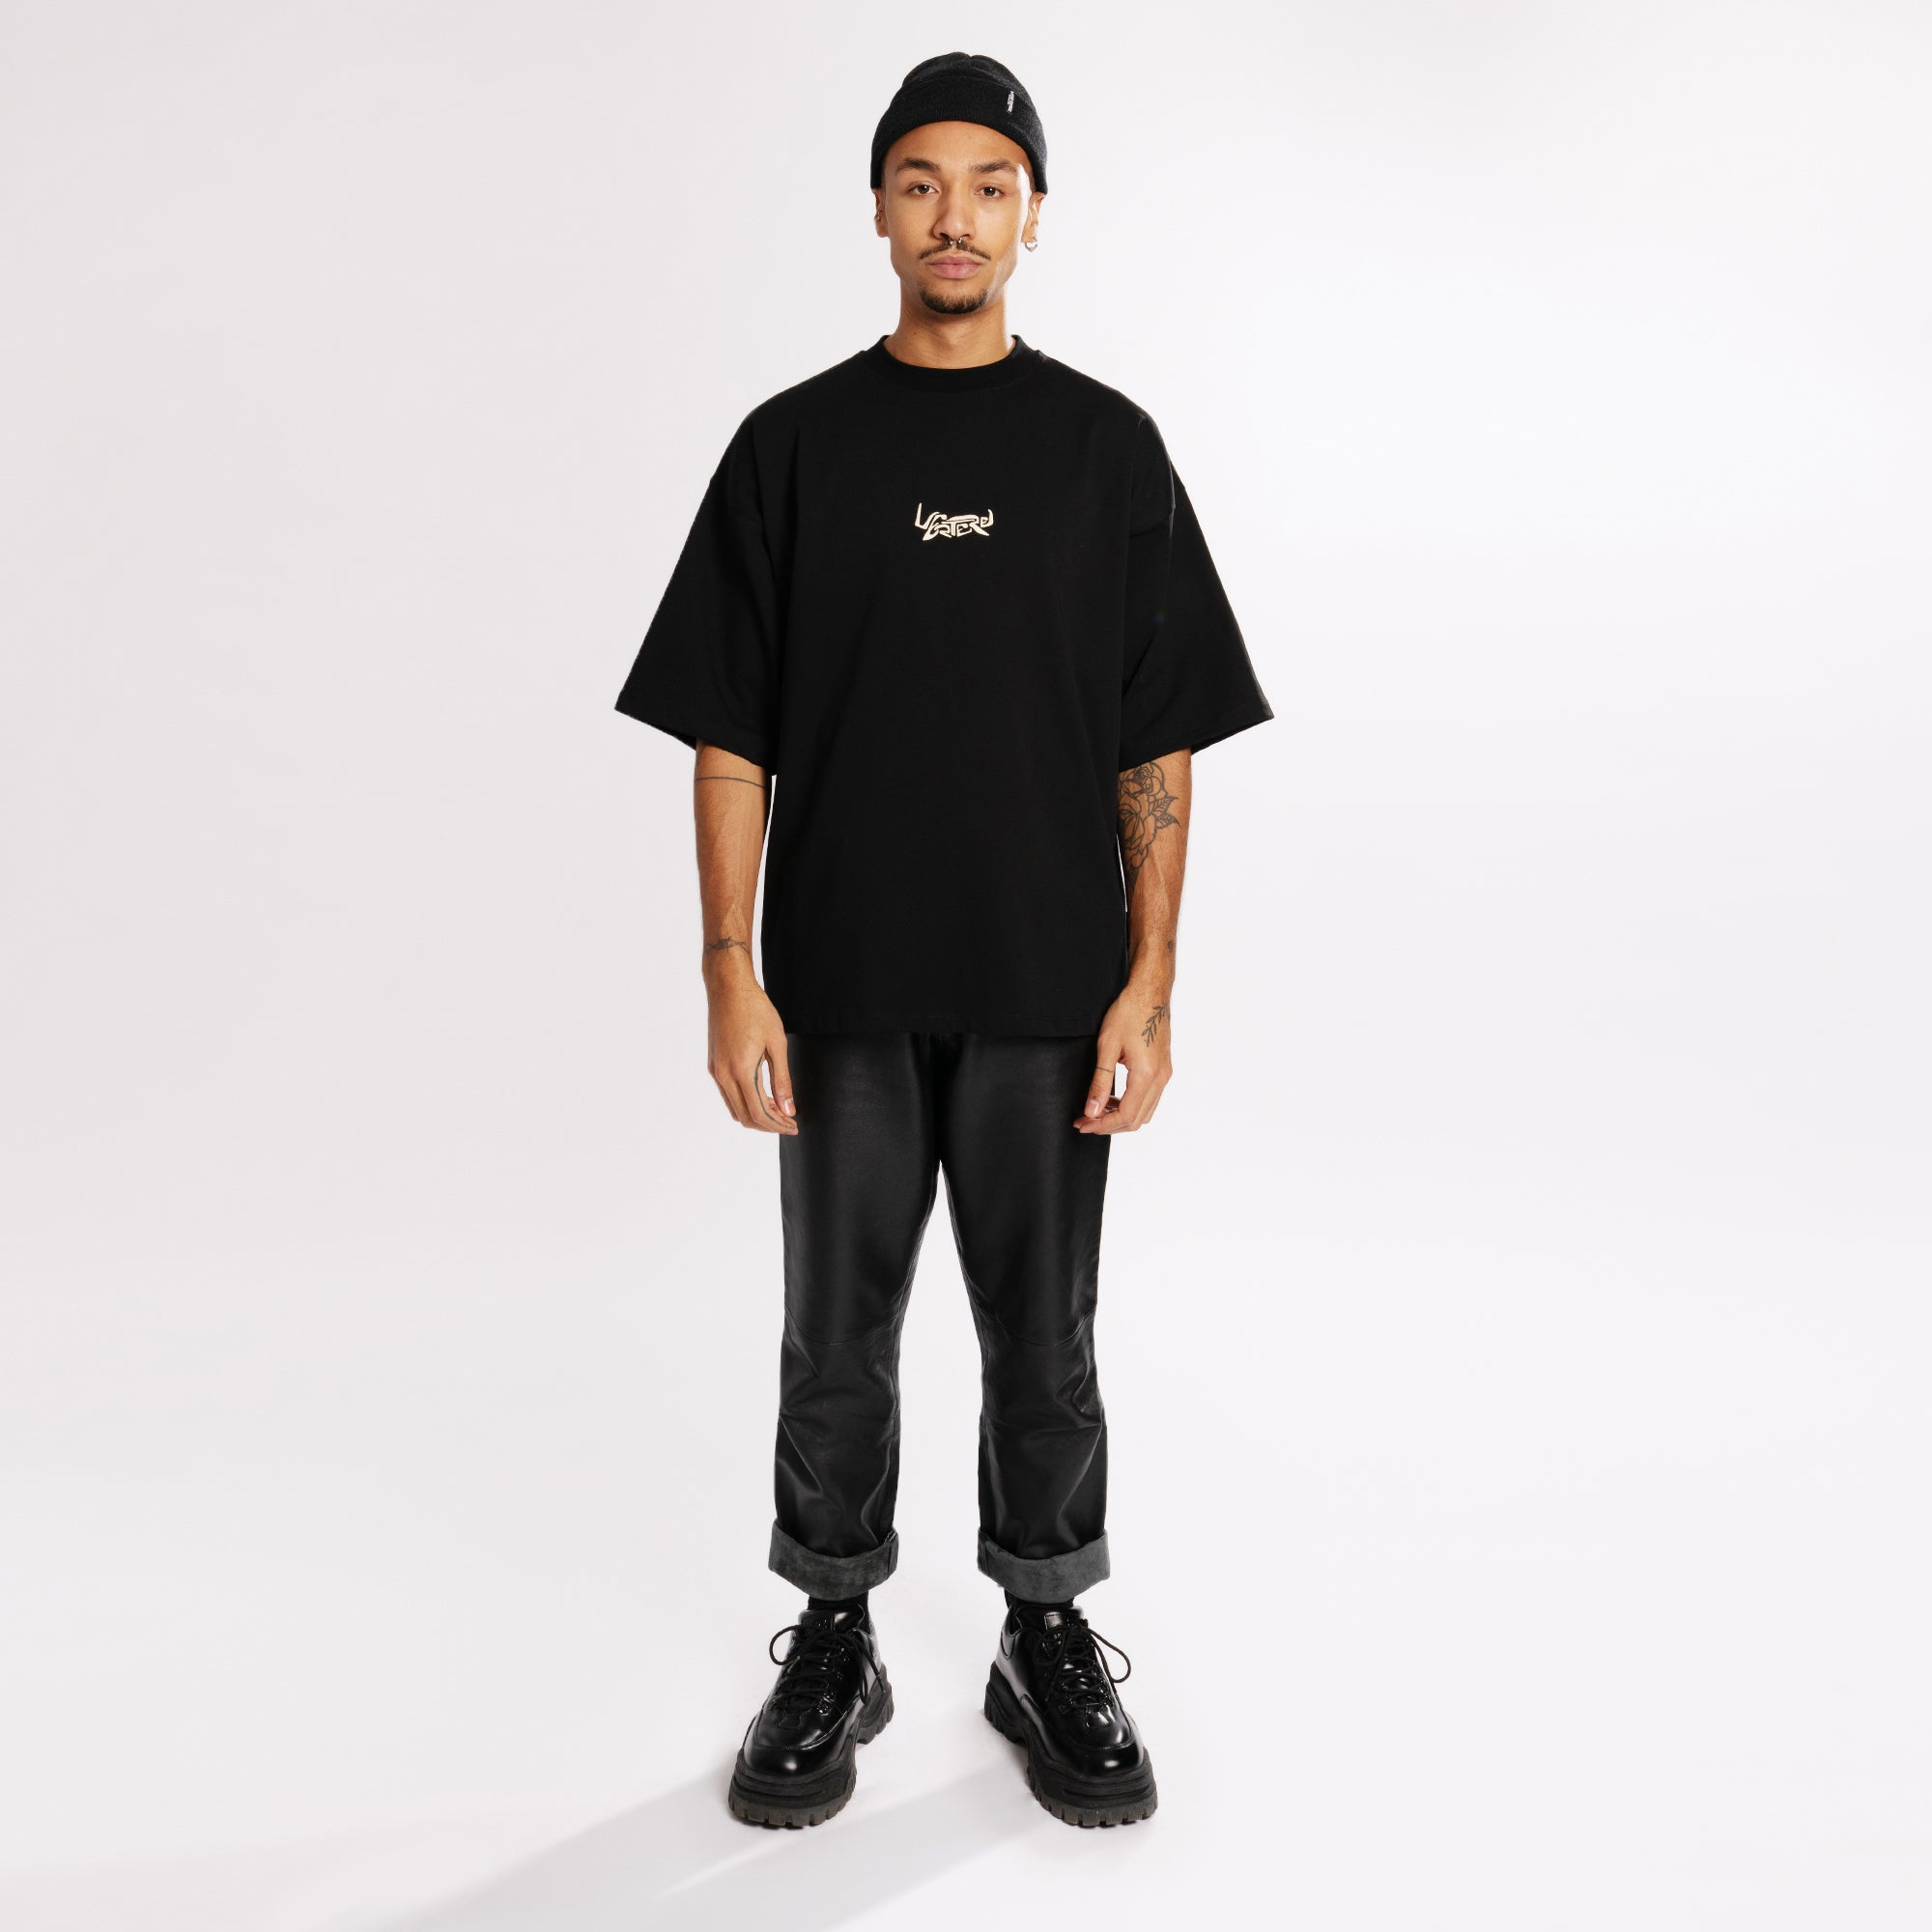 ULTRA HEAVY OVERSIZE SPACE T-SHIRT - BLACK